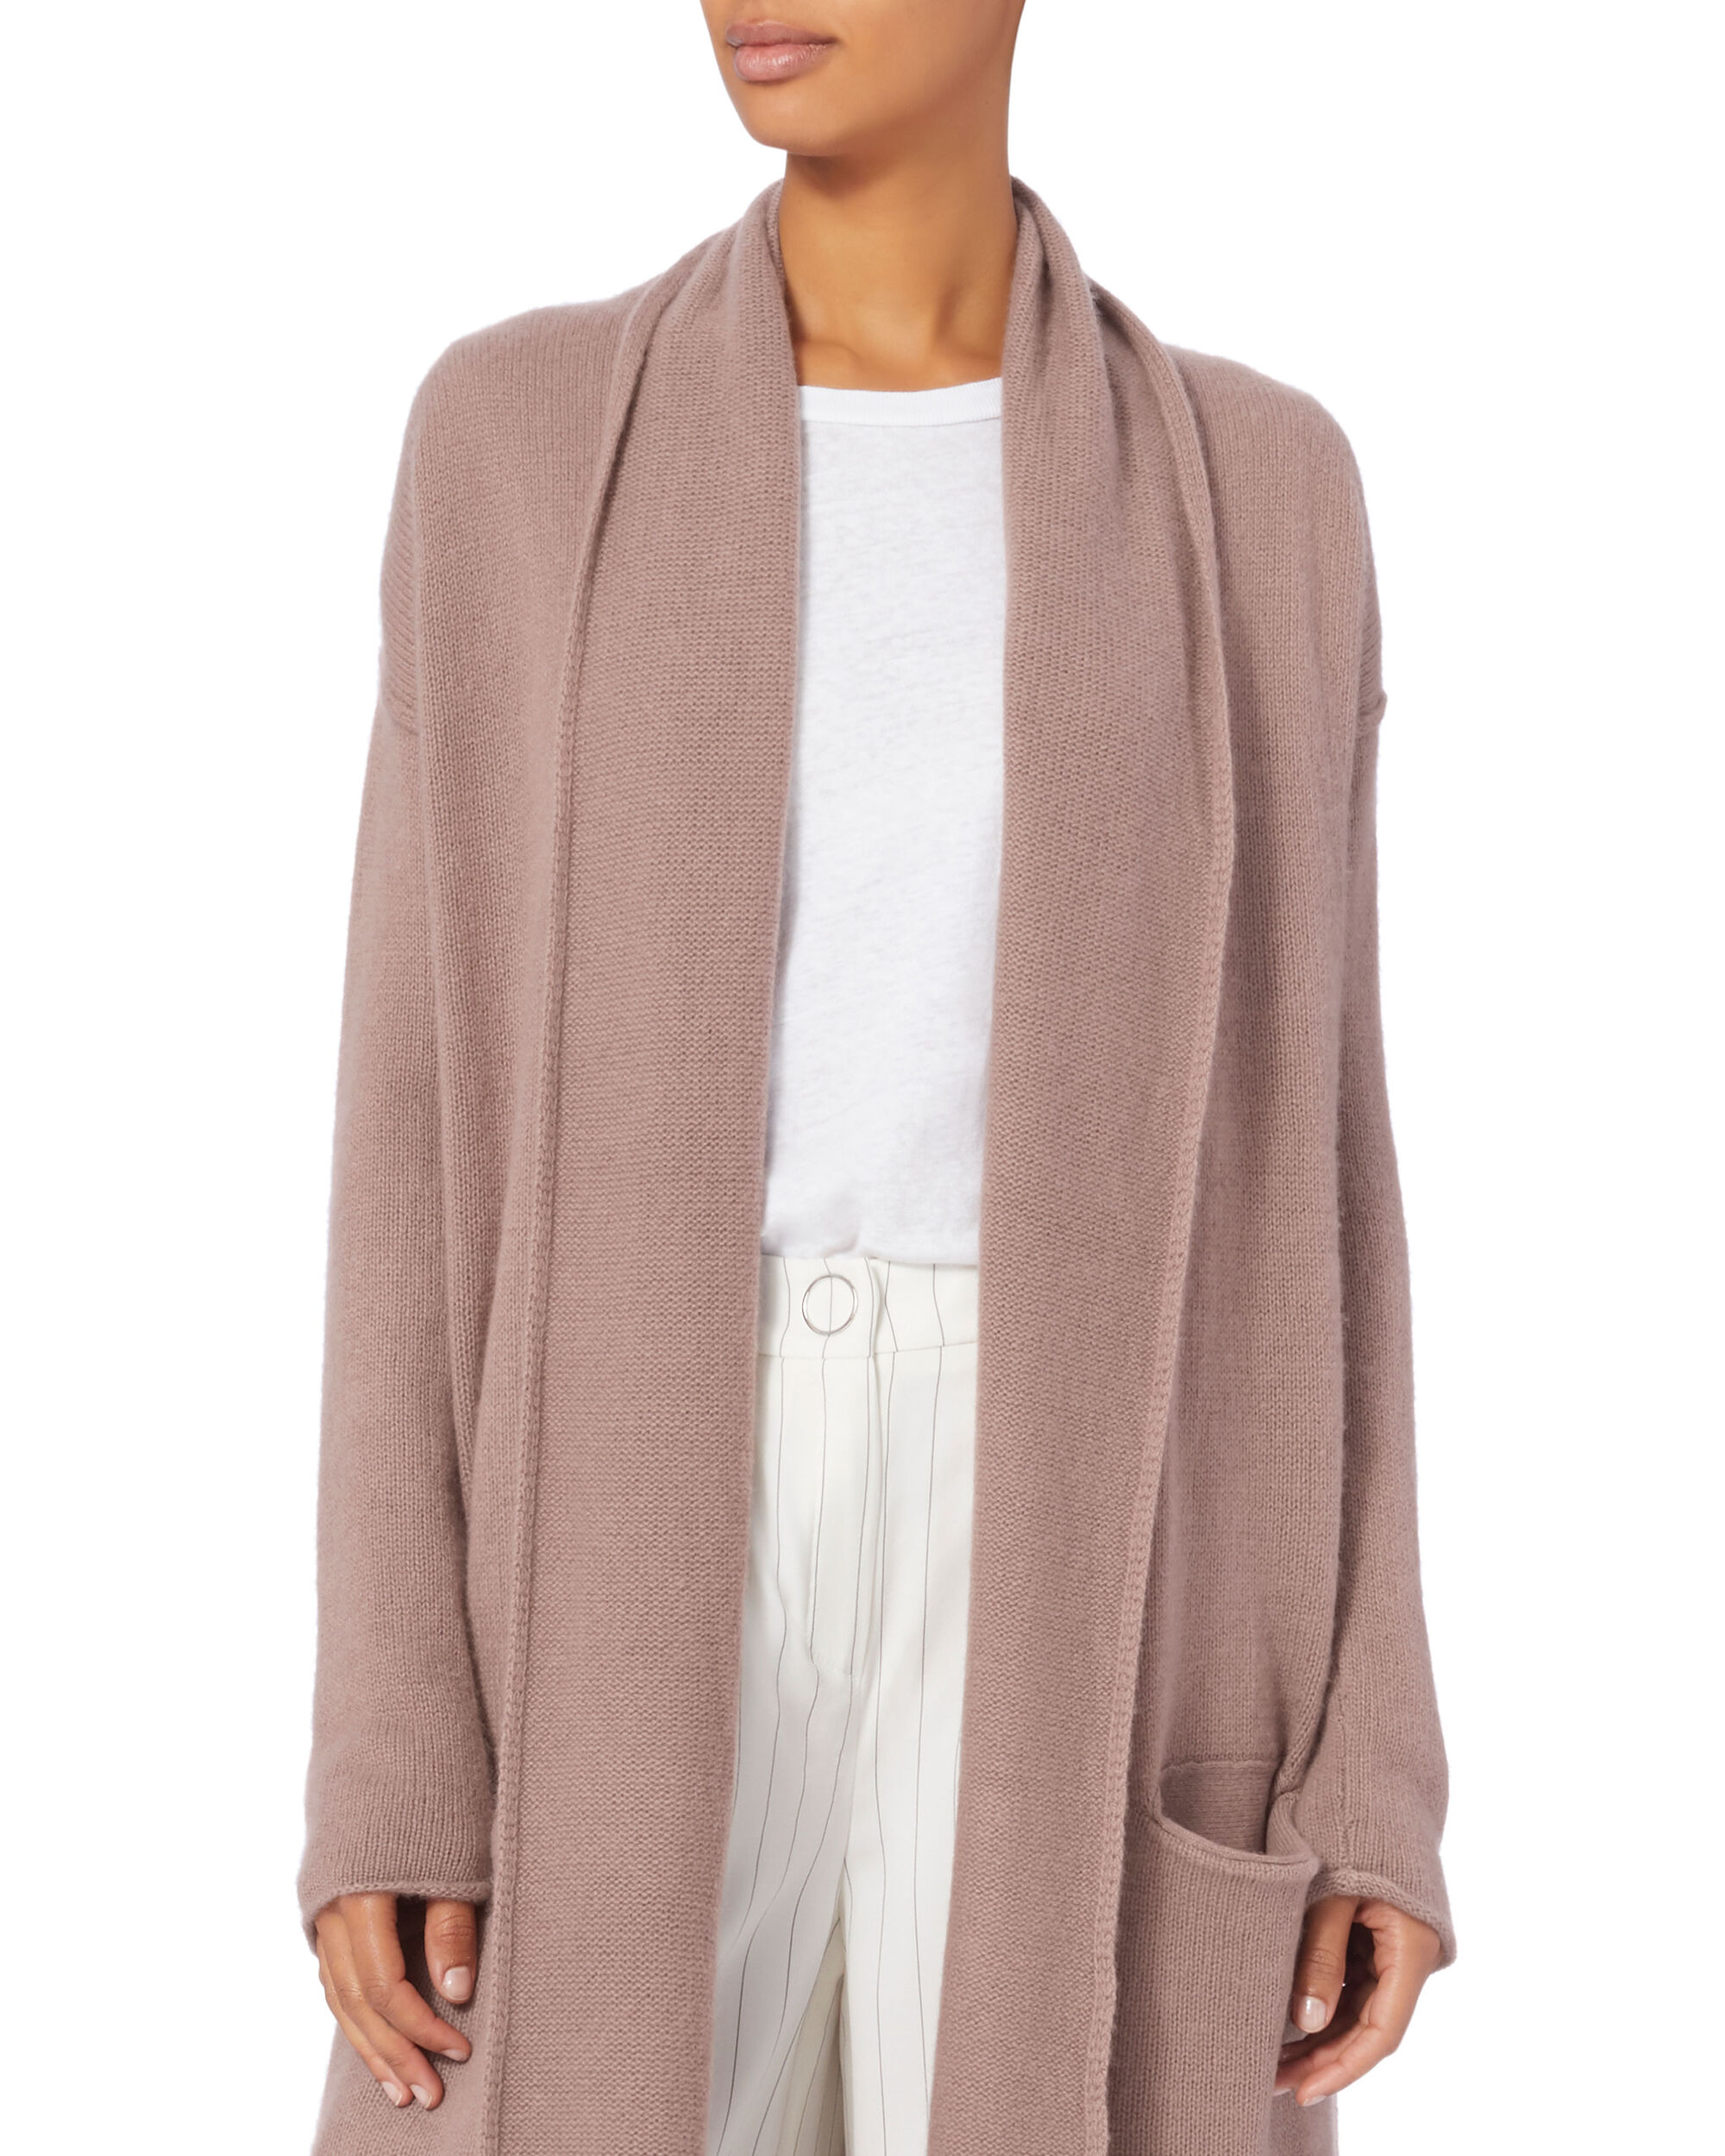 Robertson Duster Sweater, PINK, hi-res